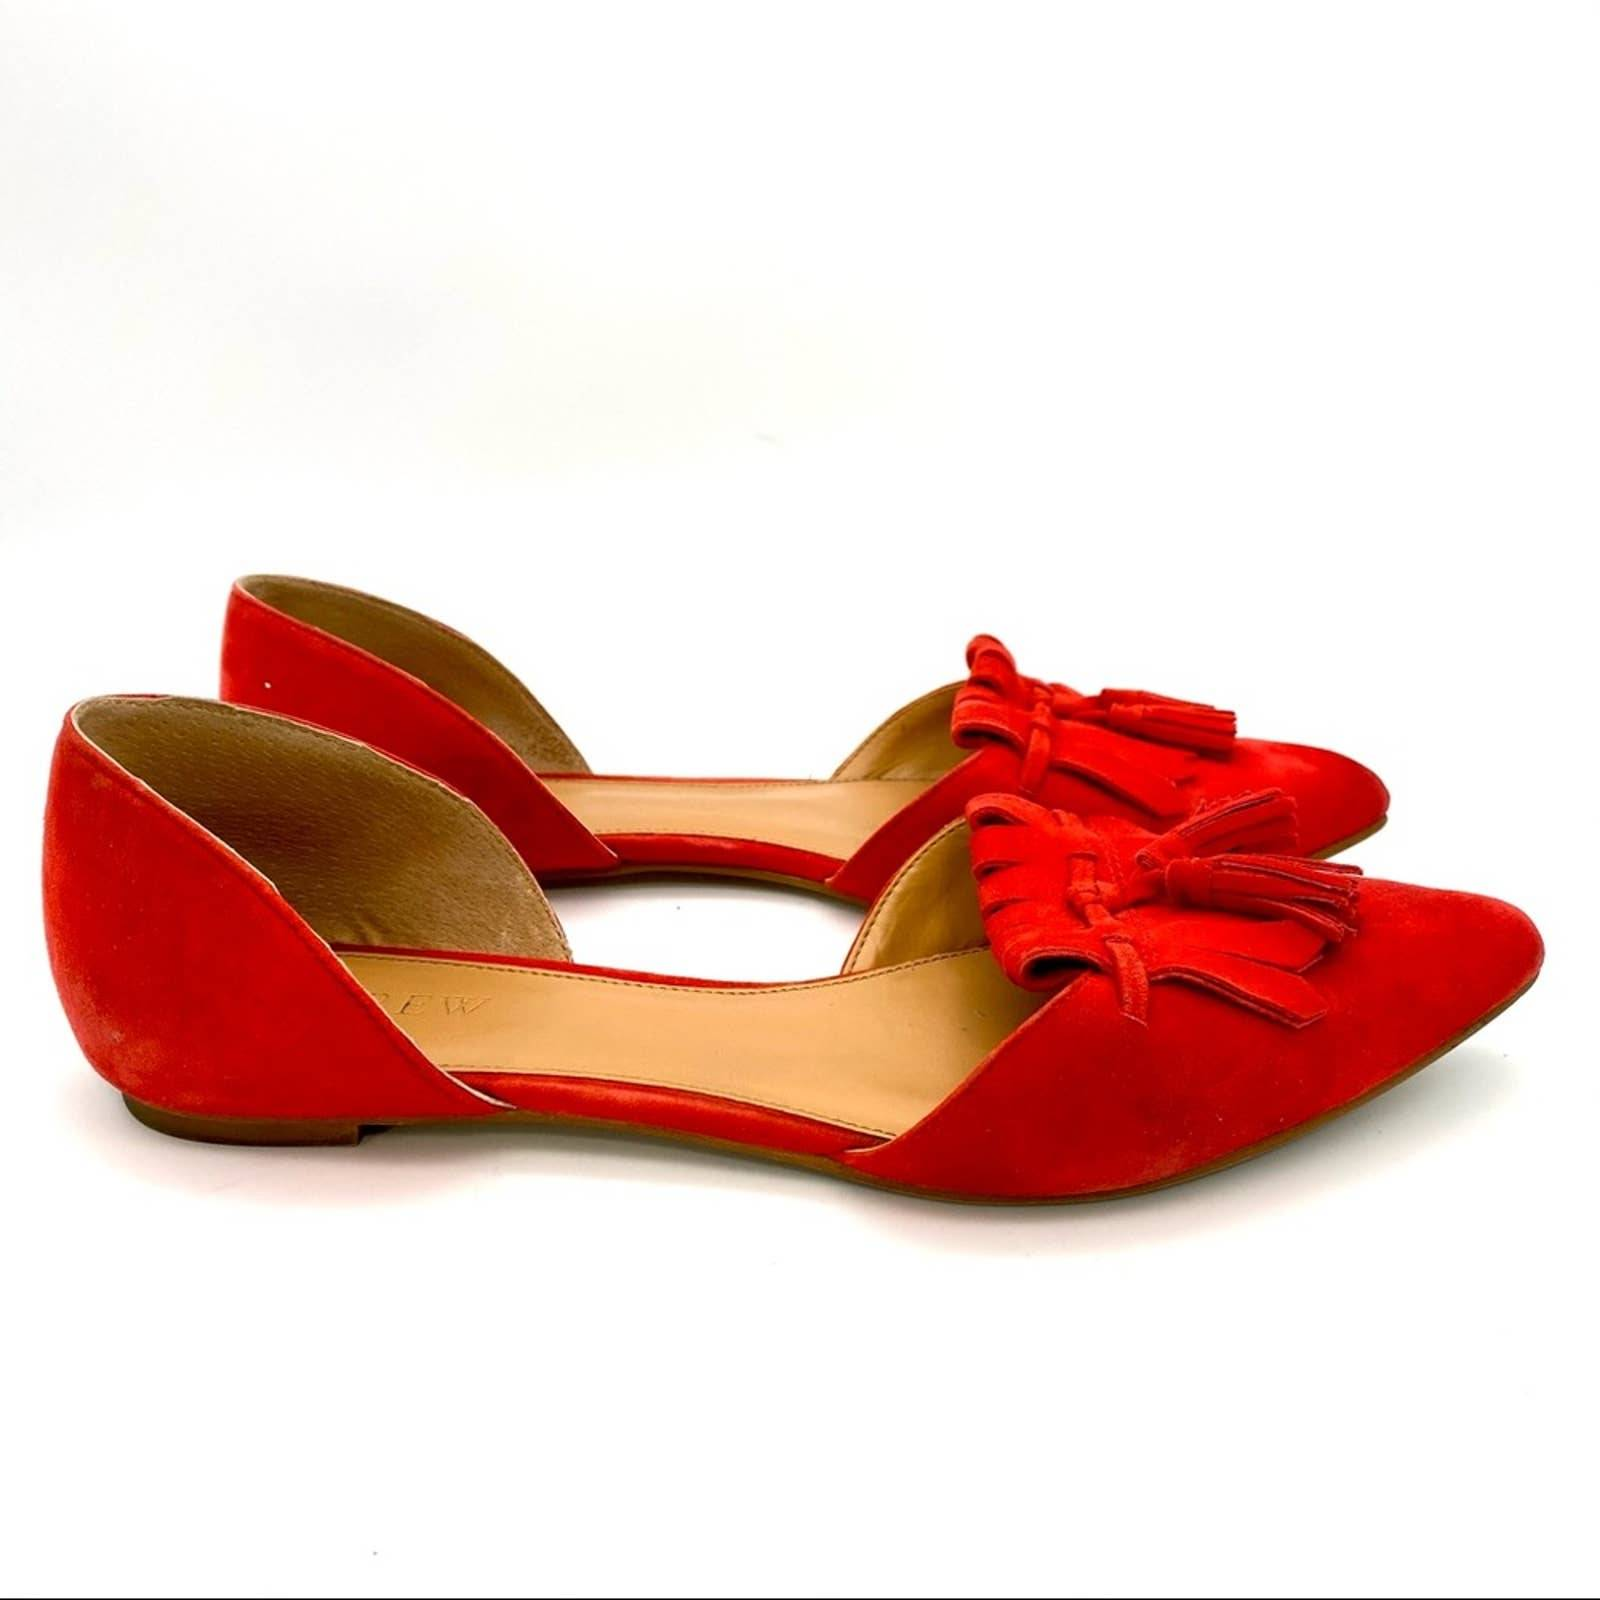 J. Crew D'Orsay Suede Red Flats